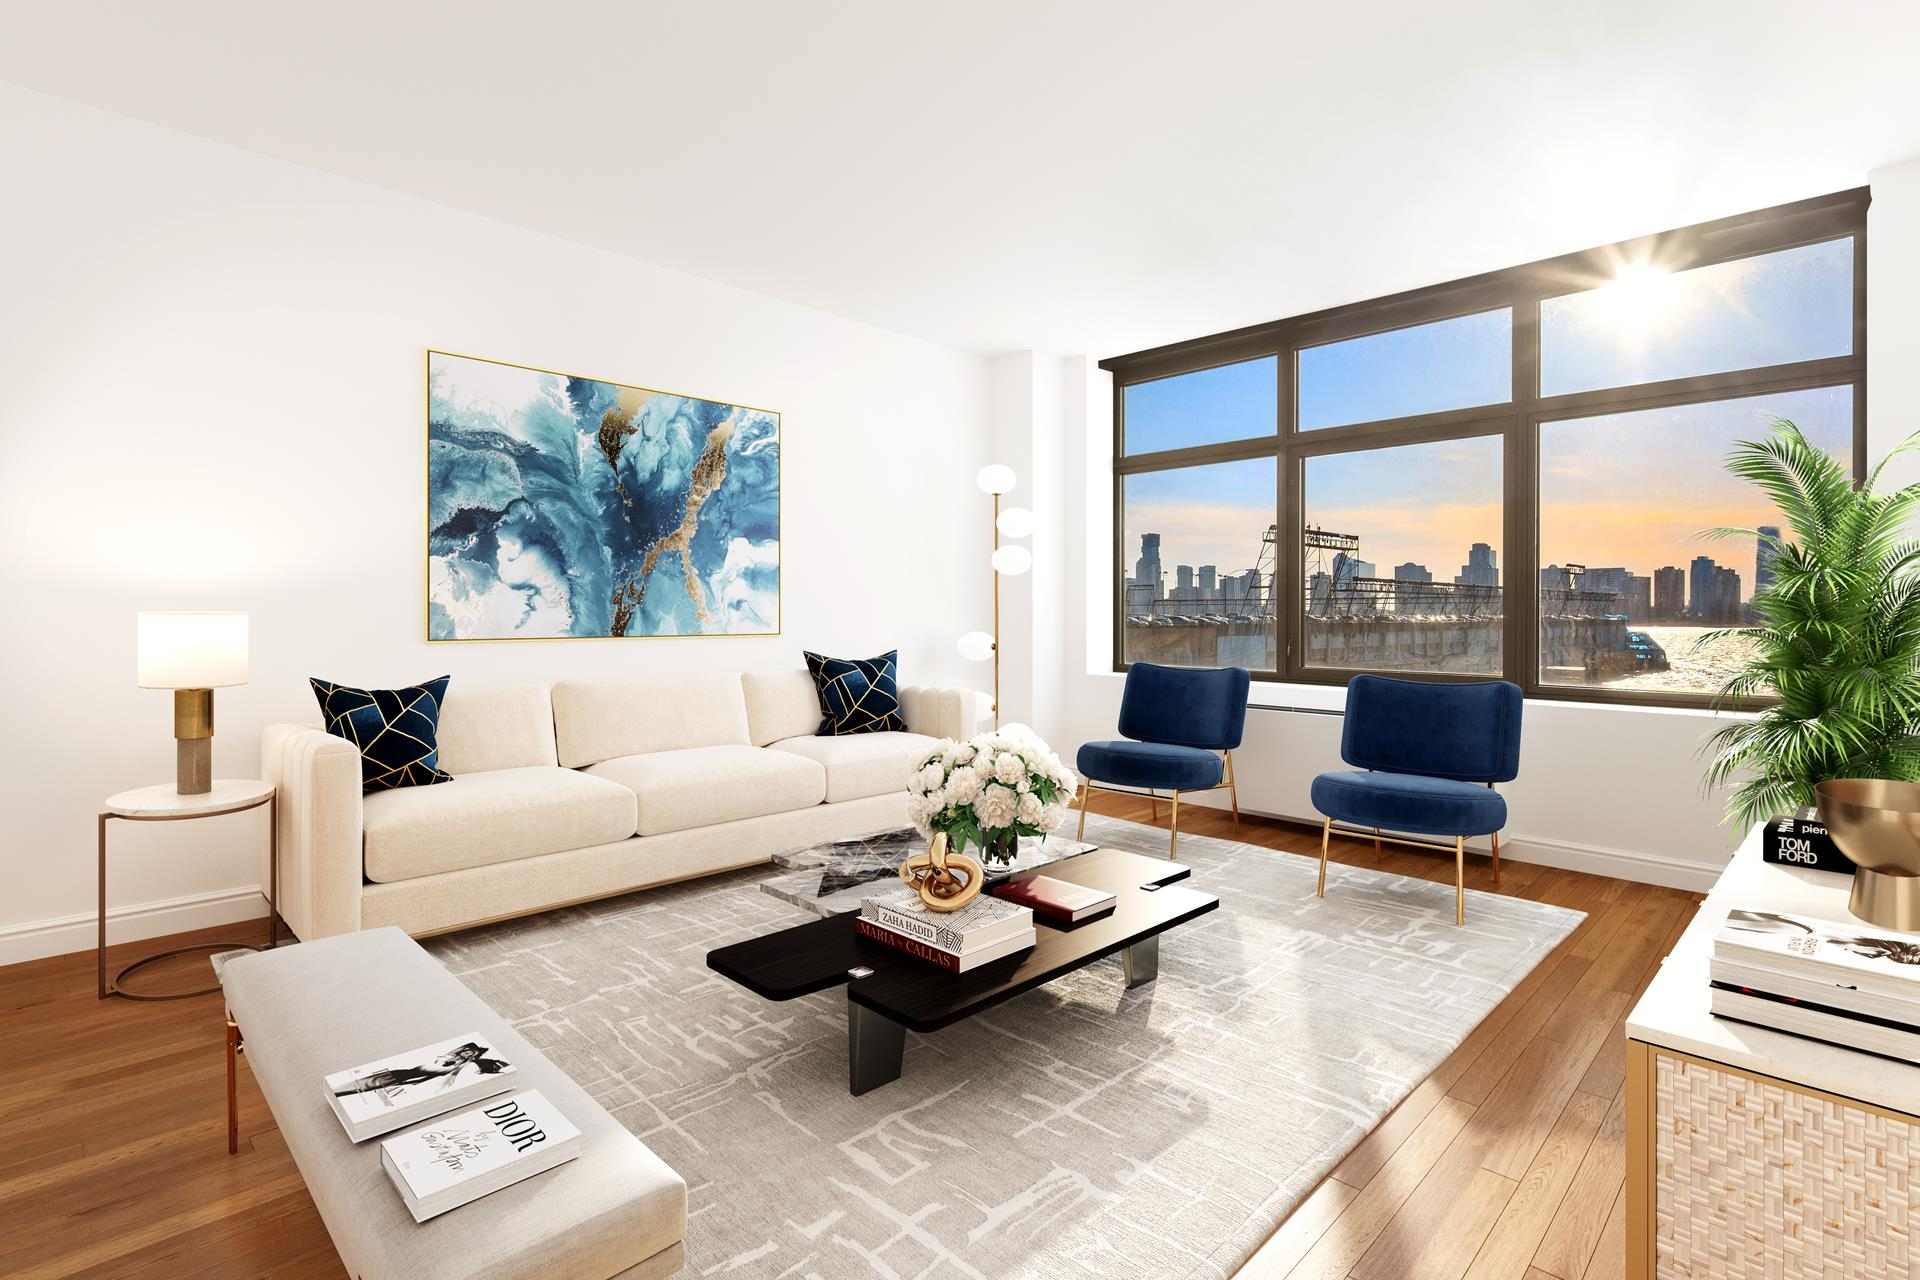 Enjoy expansive western views overlooking the river and brilliant sunsets from every room of this beautiful 2 bedroom, 2.5 bath apartment at sought-after One Morton Square! This premier condominium located on quaint cobblestoned Morton Street and the Hudson   River is the ultimate living destination in the historic West Village, offering full-service amenities and finely-designed interiors. Residence 4EW is a spacious 1,500 sq ft gem filled with natural light from oversized picture windows. Gorgeous hardwood floors,   base moldings, soothing color tones, airy ceilings and refined finishes enrich the ambience throughout.    A gracious entry foyer welcomes you inside, leading to a large hall closet, convenient washer-dryer, and lovely powder room at right. Straight off the foyer is the generous open-plan living/dining and entertaining space where you can relax and host guests.   Connected is a modern kitchen with pass-through window to the dining area for easy serving, appointed with sleek cabinetry, granite countertops, and premium stainless steel appliances including a Viking range and cooktop, Sub-Zero refrigerator, and mounted   microwave oven.     The inviting, well-proportioned primary bedroom receives lots of sunlight and showcases stunning river and skyline views. There is plenty of room for a king-size bed, bedroom furnishings and a sitting or office area. Also in your private suite is a huge walk-in   closet, 2nd closet, and high-end bath featuring a dual sink vanity and soaking tub with marble tops, and separate glass-enclosed spa shower. The secondary bedroom is sizable and tranquil, with river views, ample closets, and a full tiled en-suite bath.    Designed by the renowned Costas Kondylis & Partners and finished in 2004, One Morton Square is a striking luxury residence with 24/7 doorman & concierge service, an onsite garage with valet, state-of-the-art fitness center, large lush courtyard garden, children's   playroom, and bike storage. The prime locatio